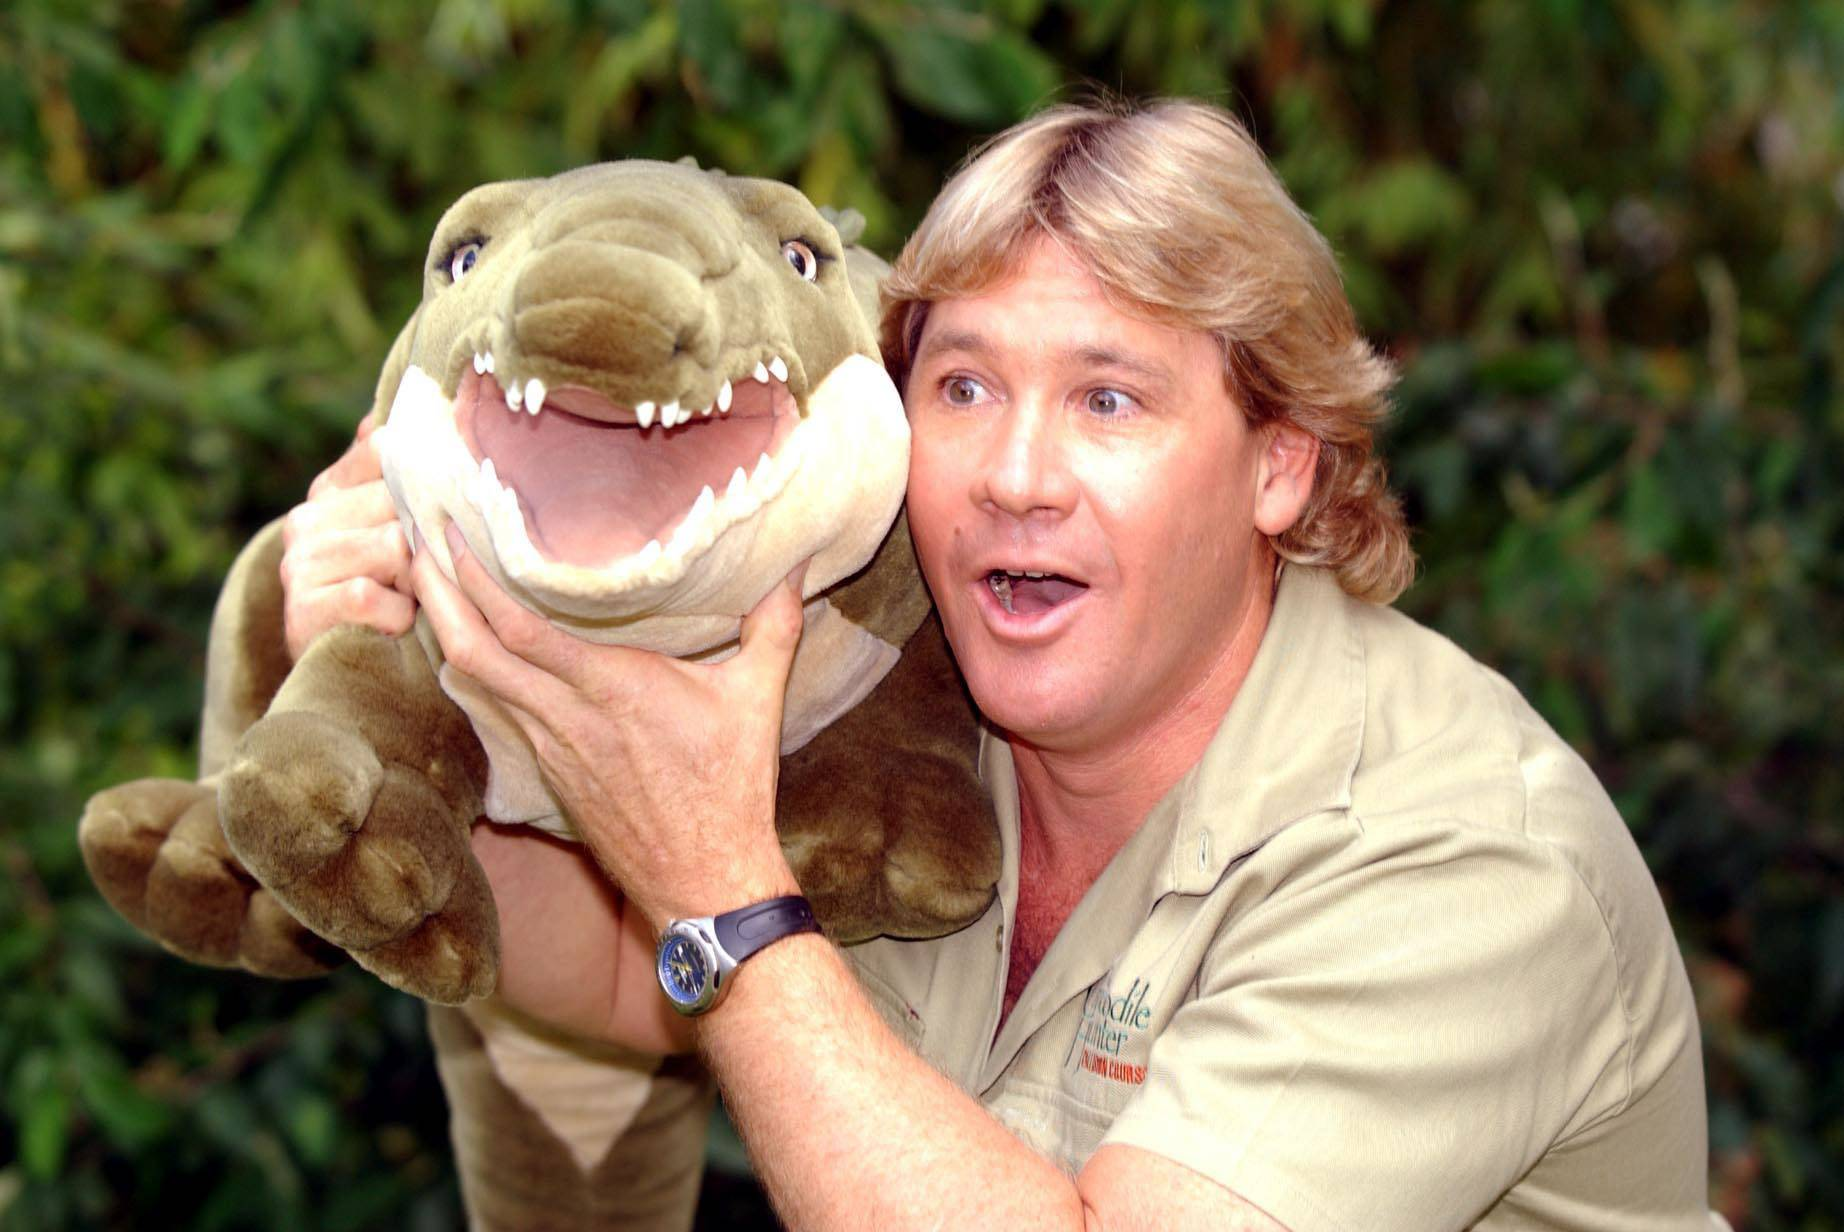 Steve Irwin - Crocodile Hunter